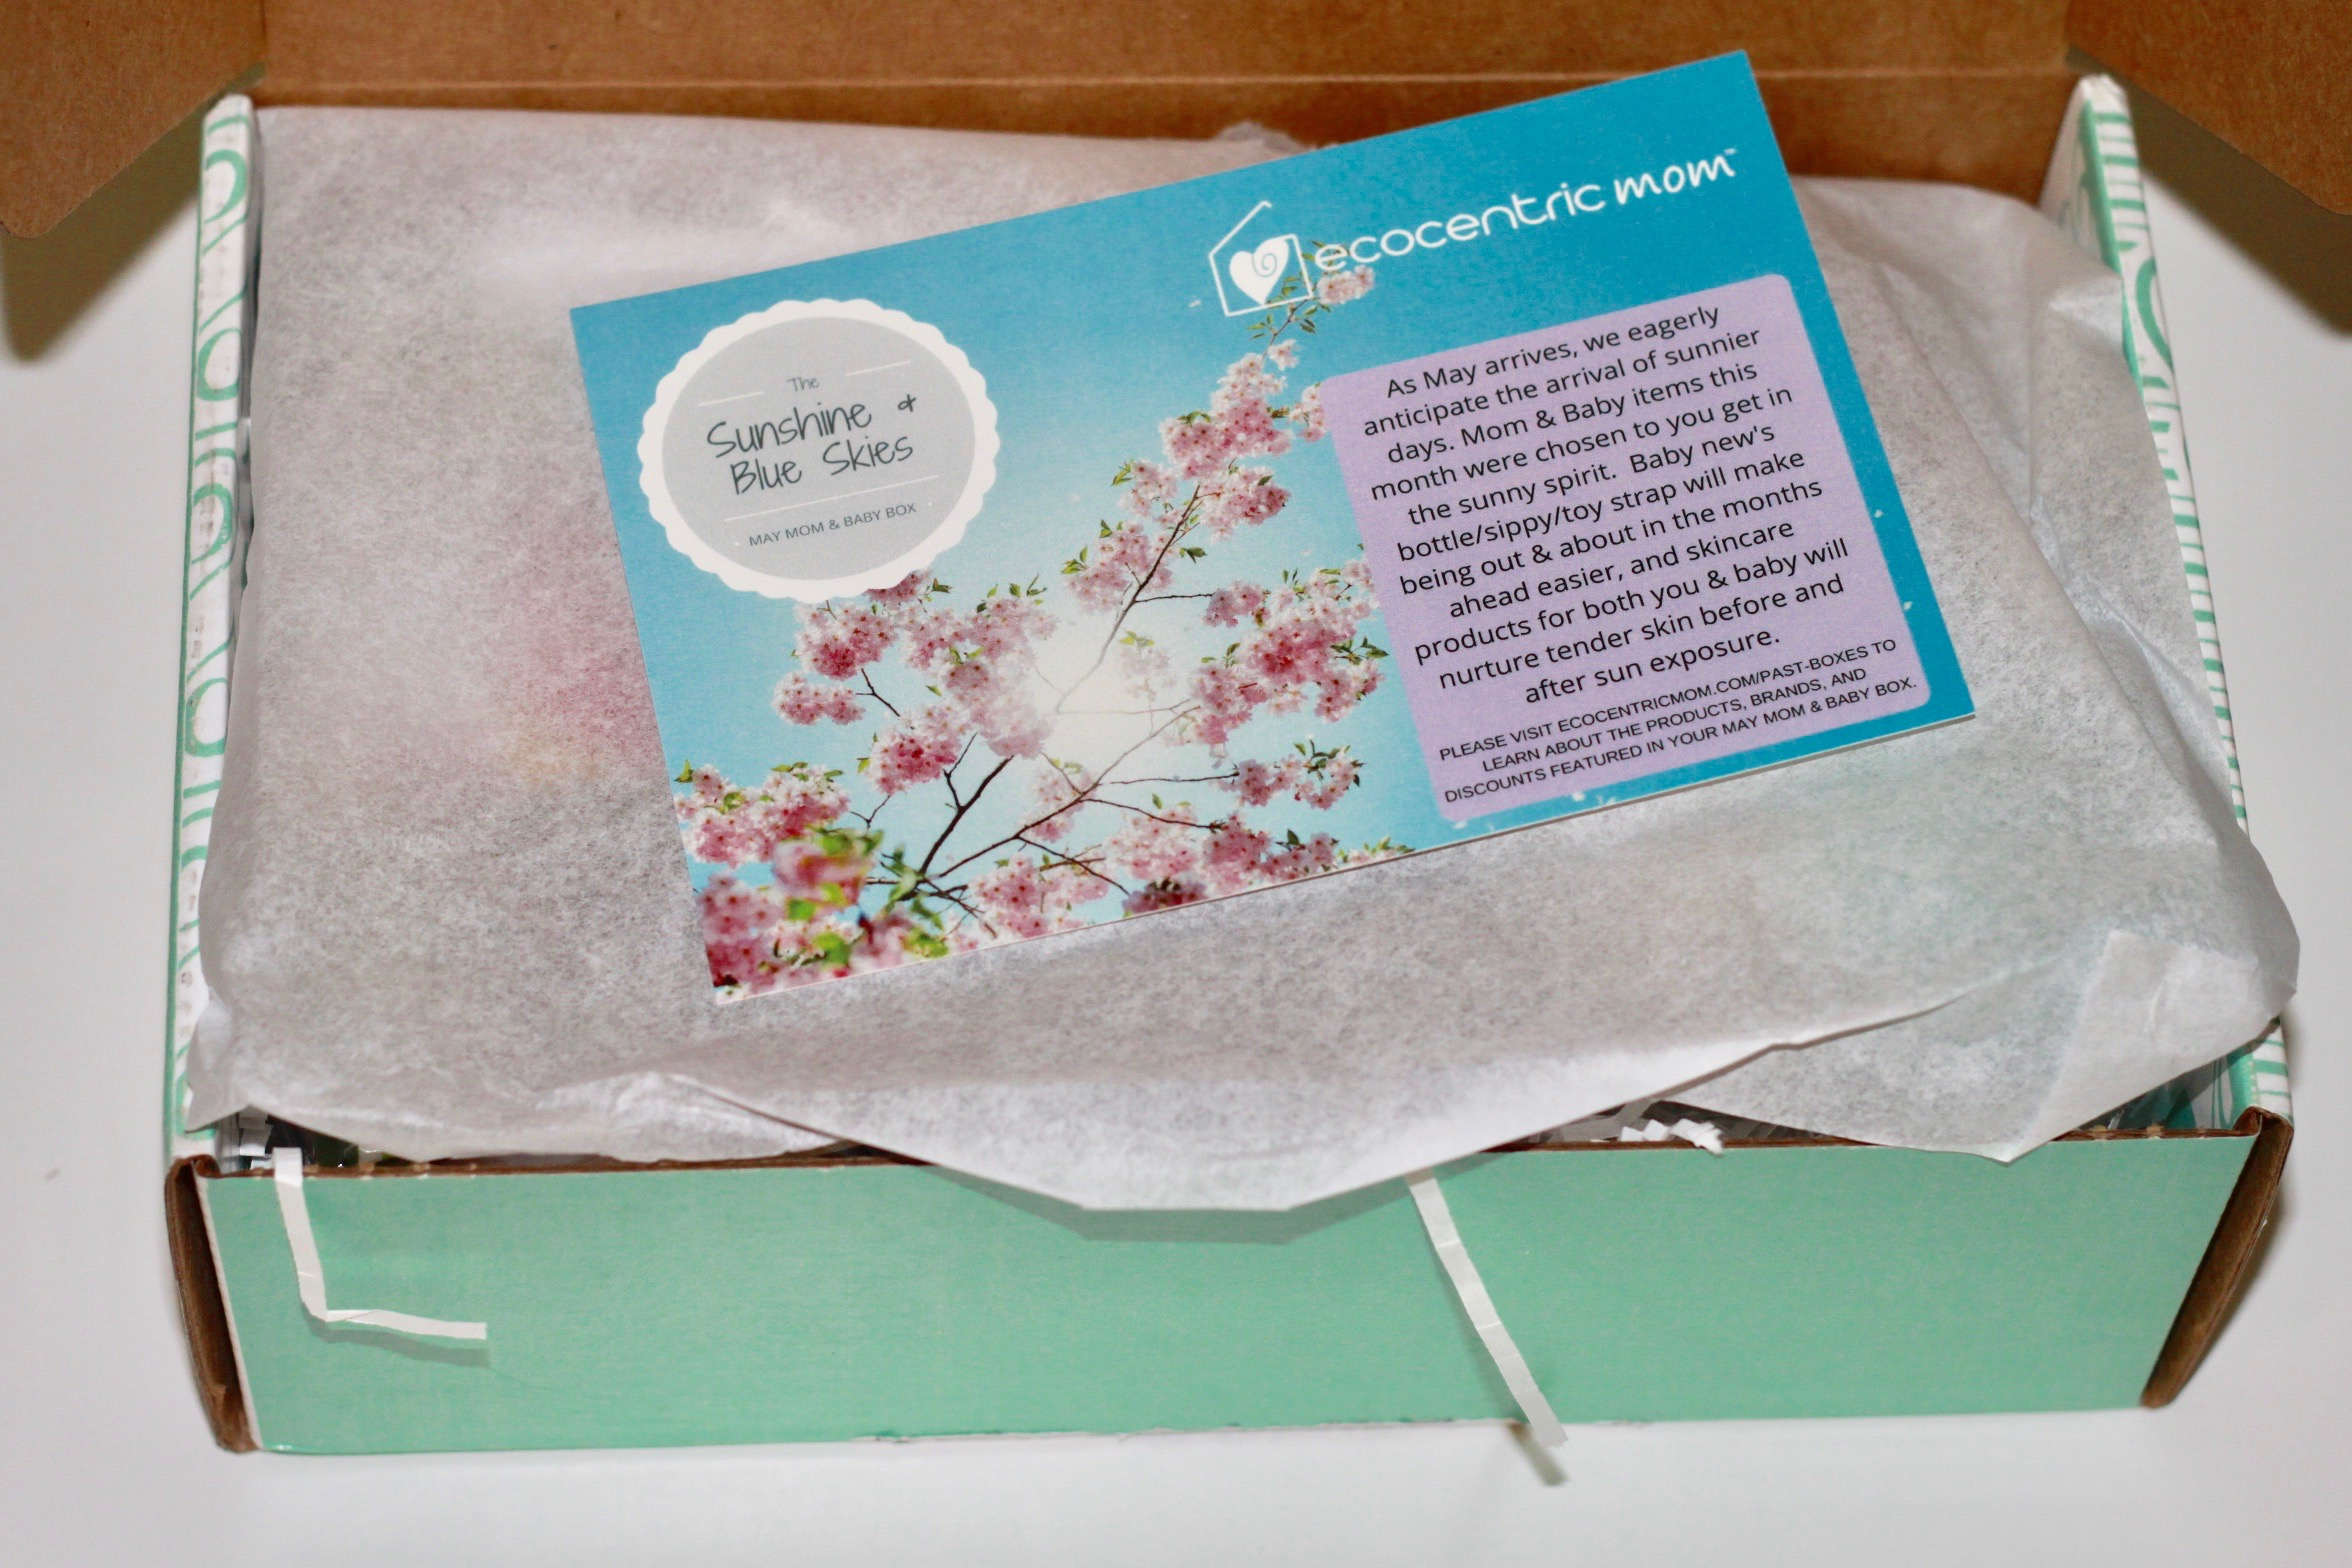 Ecocentric Mom & Baby Box Review - May 2017